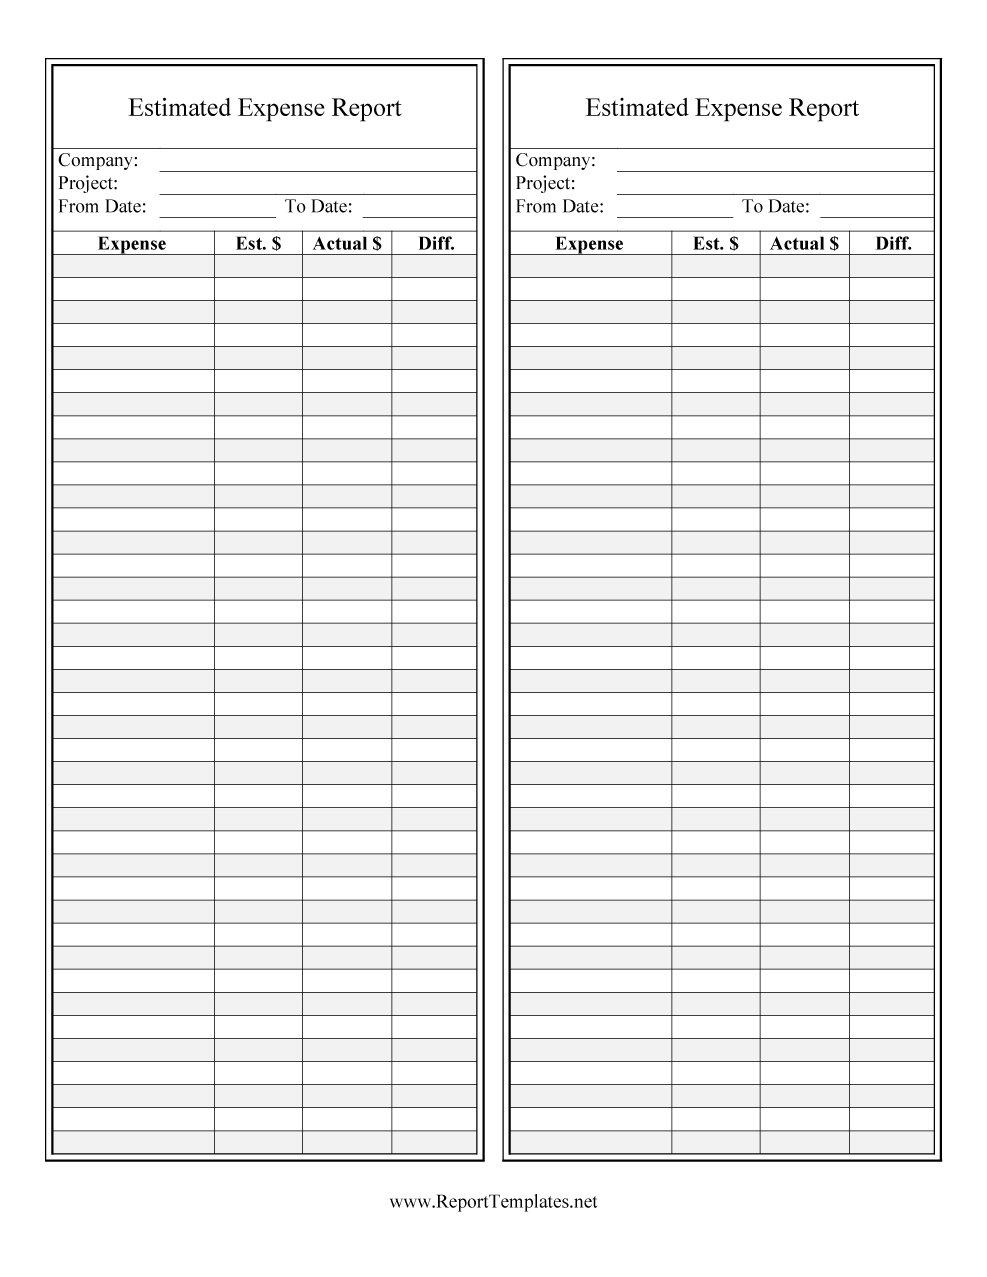 40  Expense Report Templates To Help You Save Money   Template Lab And Company Expense Report Company Expense Report Expense Spreadshee Expense Spreadshee company monthly expense report